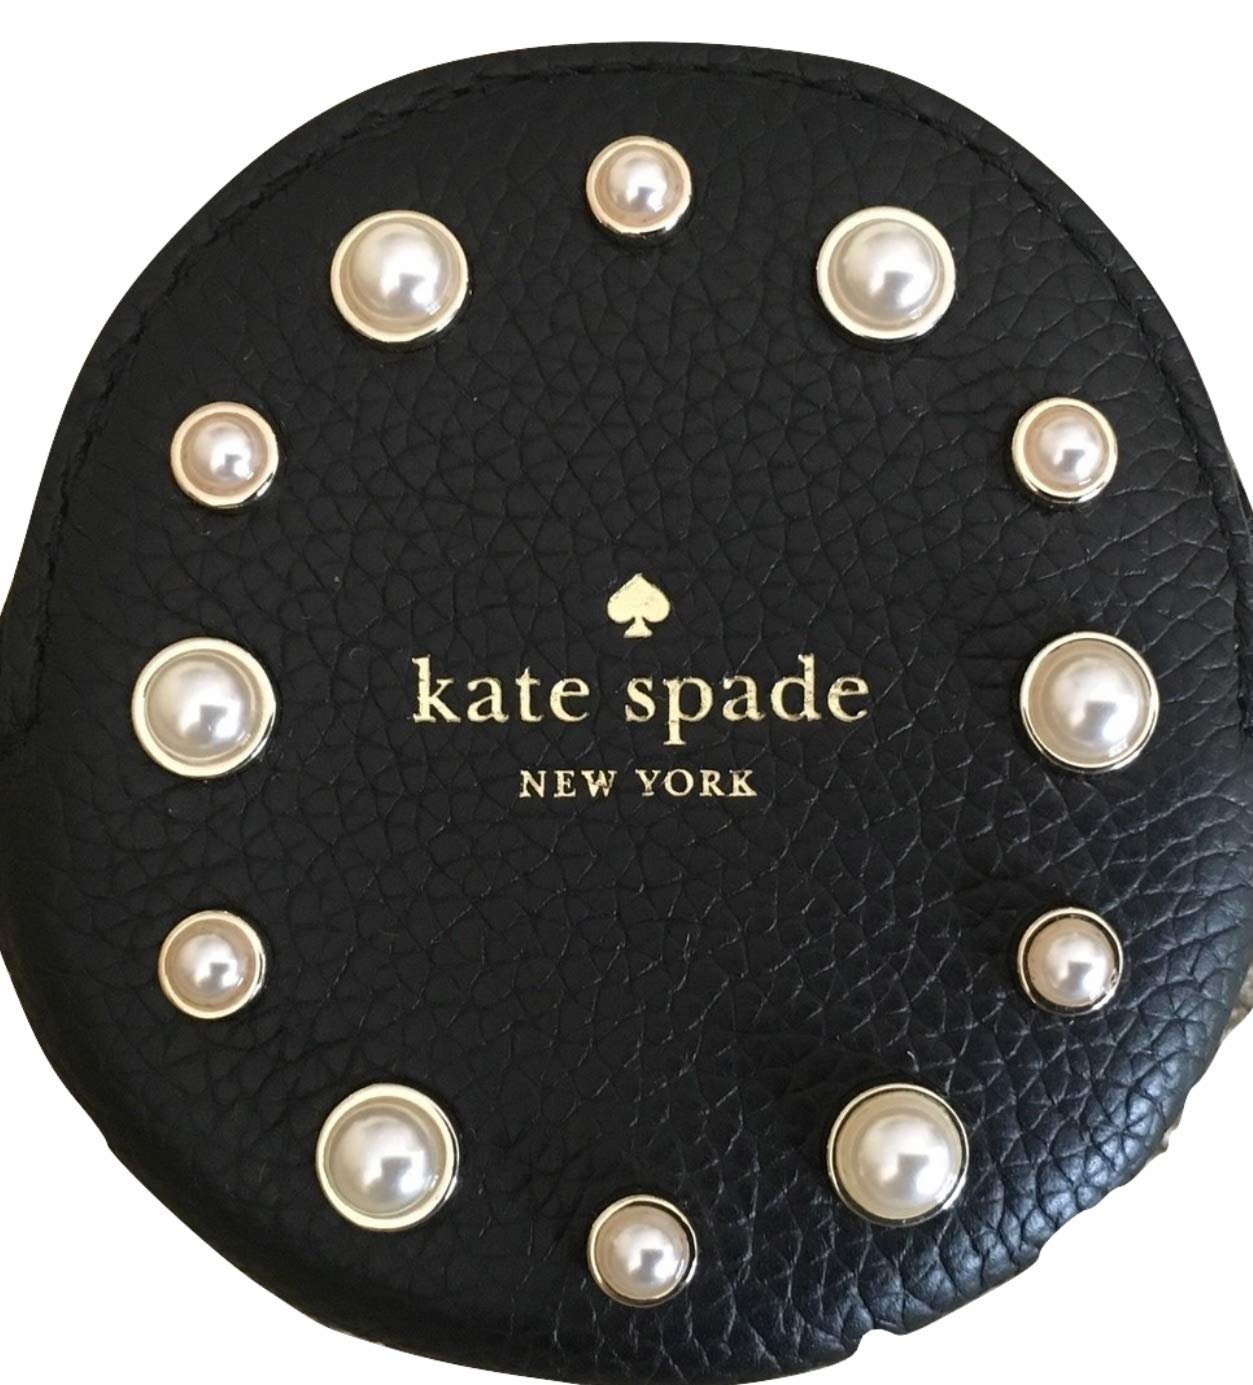 Kate Spade Black Pearl Coin Purse Round Leather Small Keychain